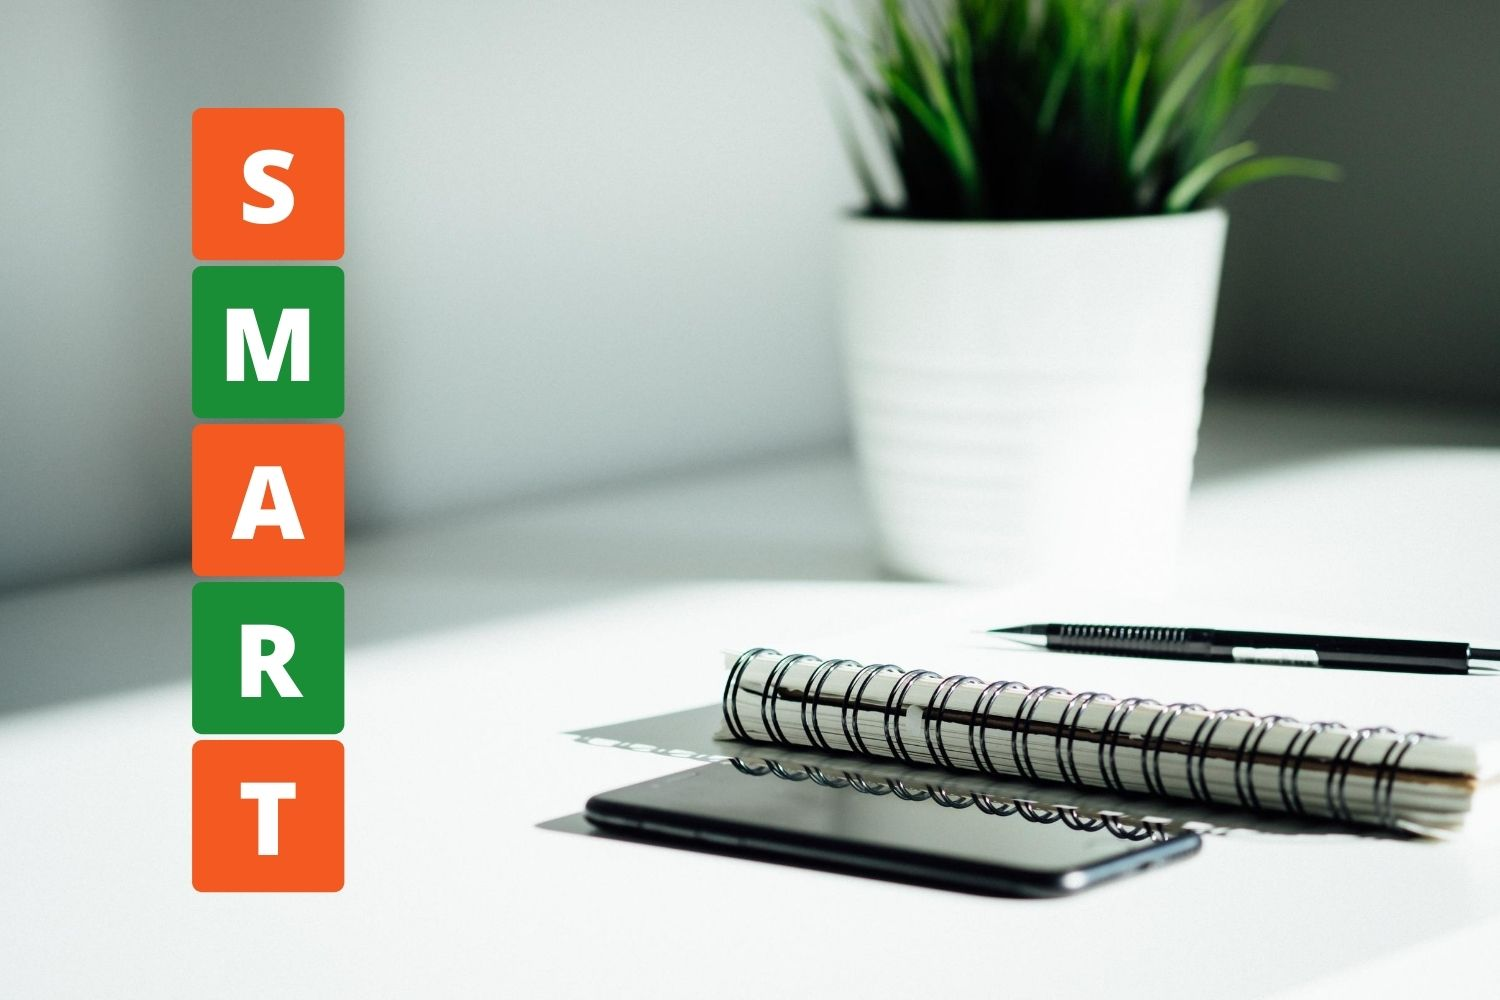 Excellent.org explains how to set and achieve better goals with the SMART method, the picture shows a notebook and smartphone on a table, on the picture is the word SMART